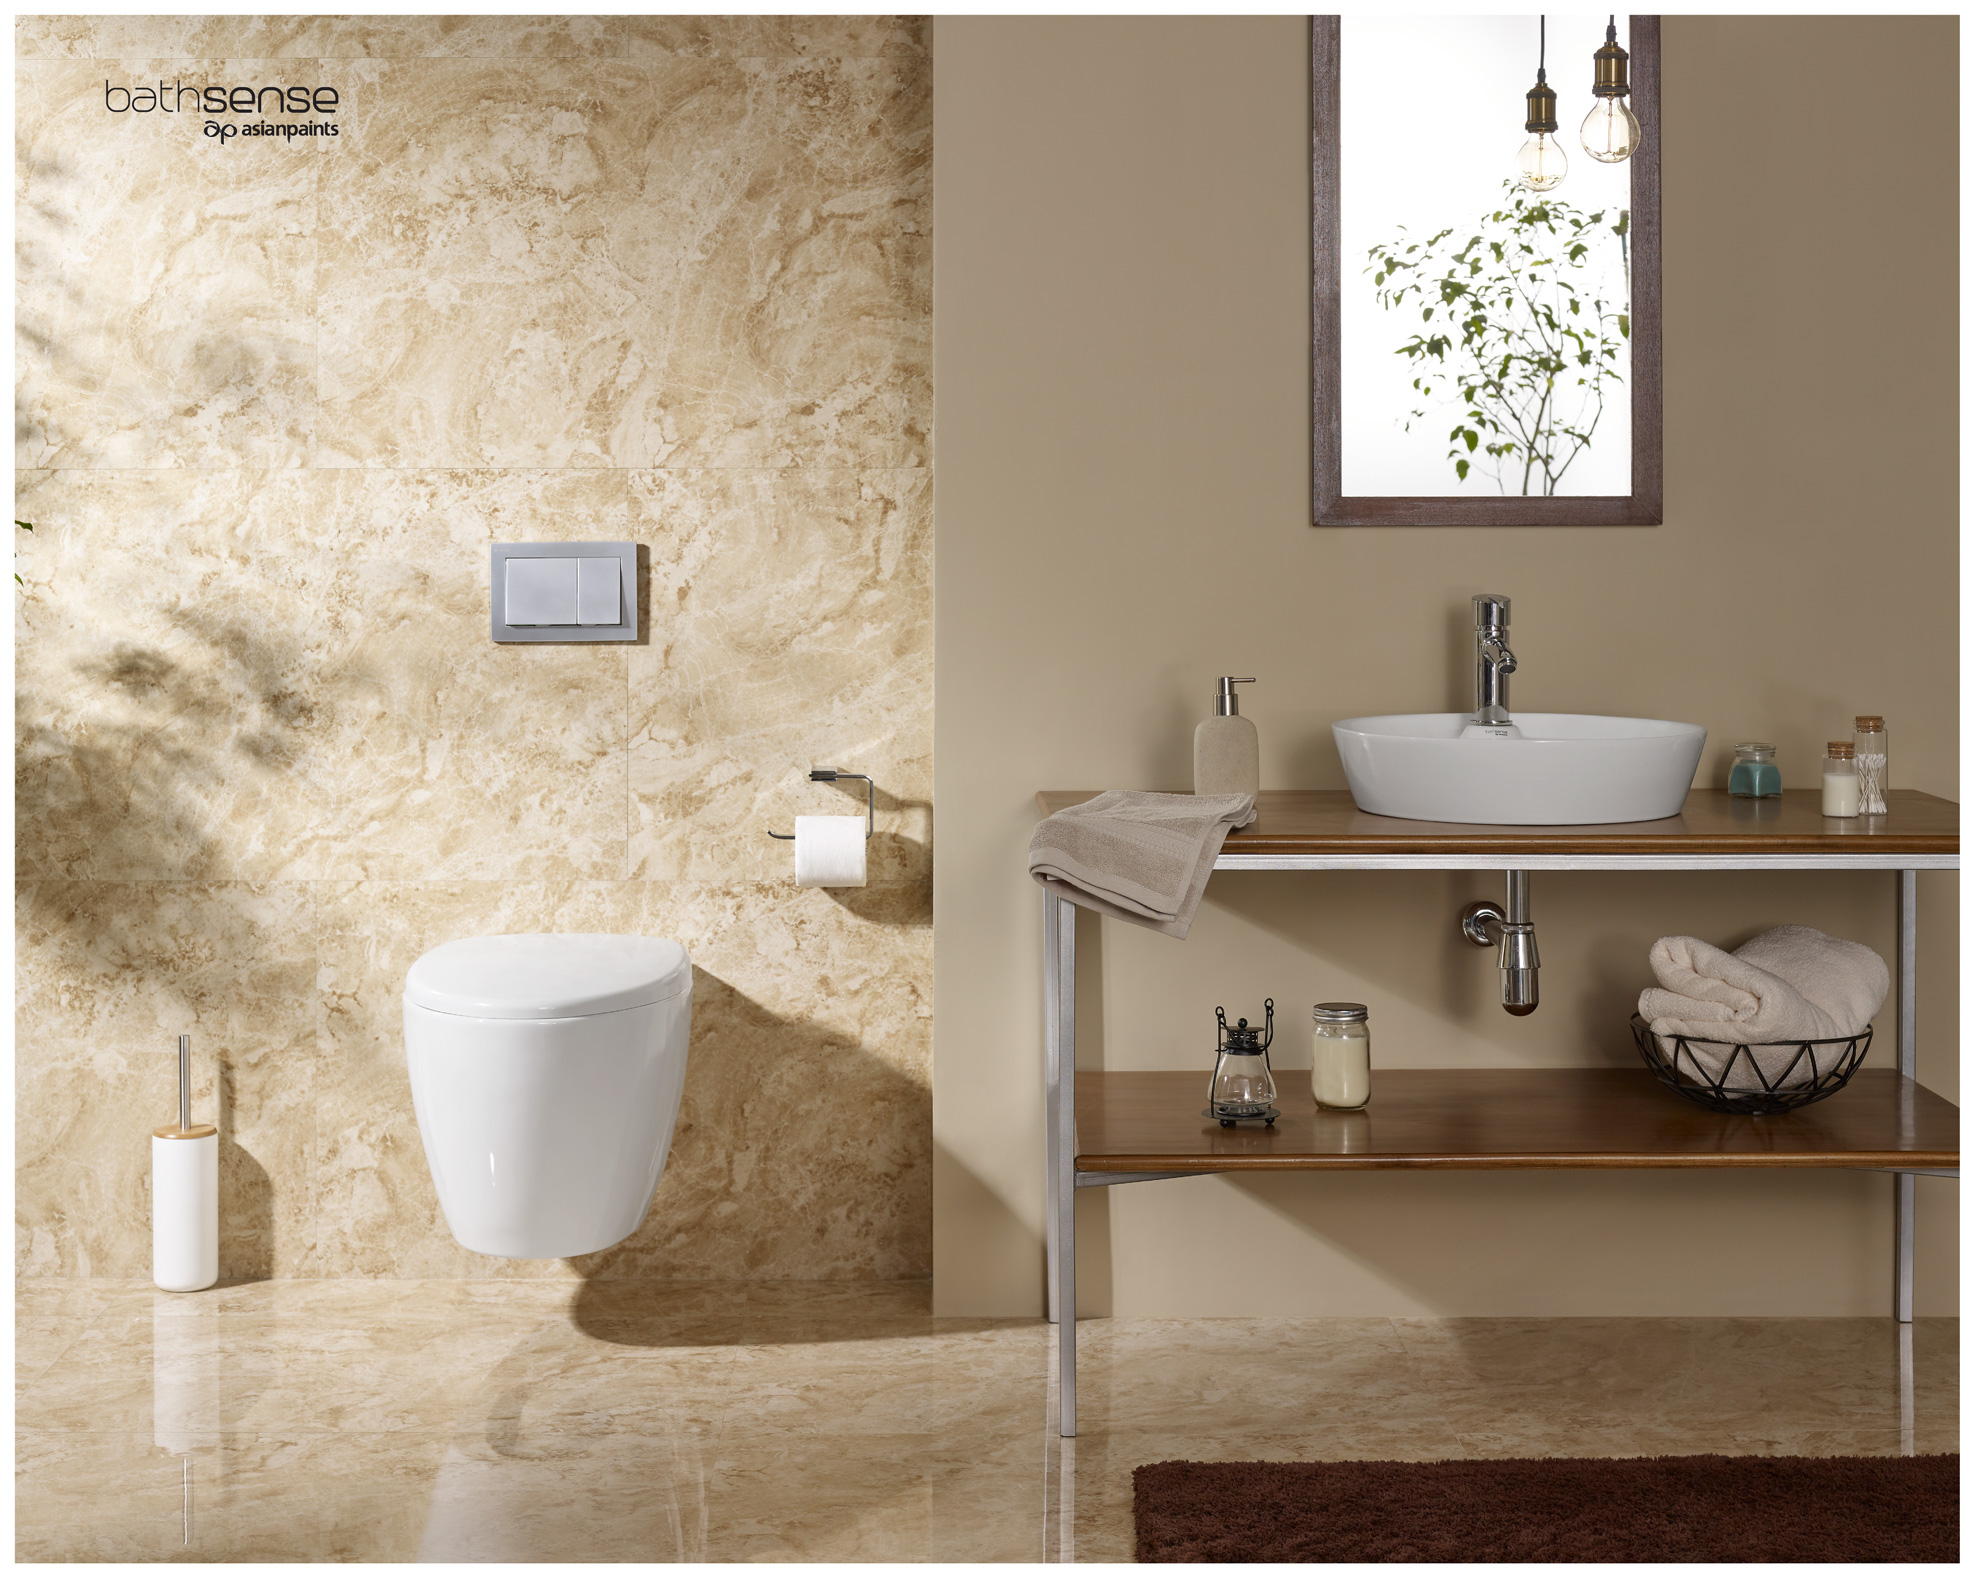 Asian Paints Bathsense Bathroom Theme